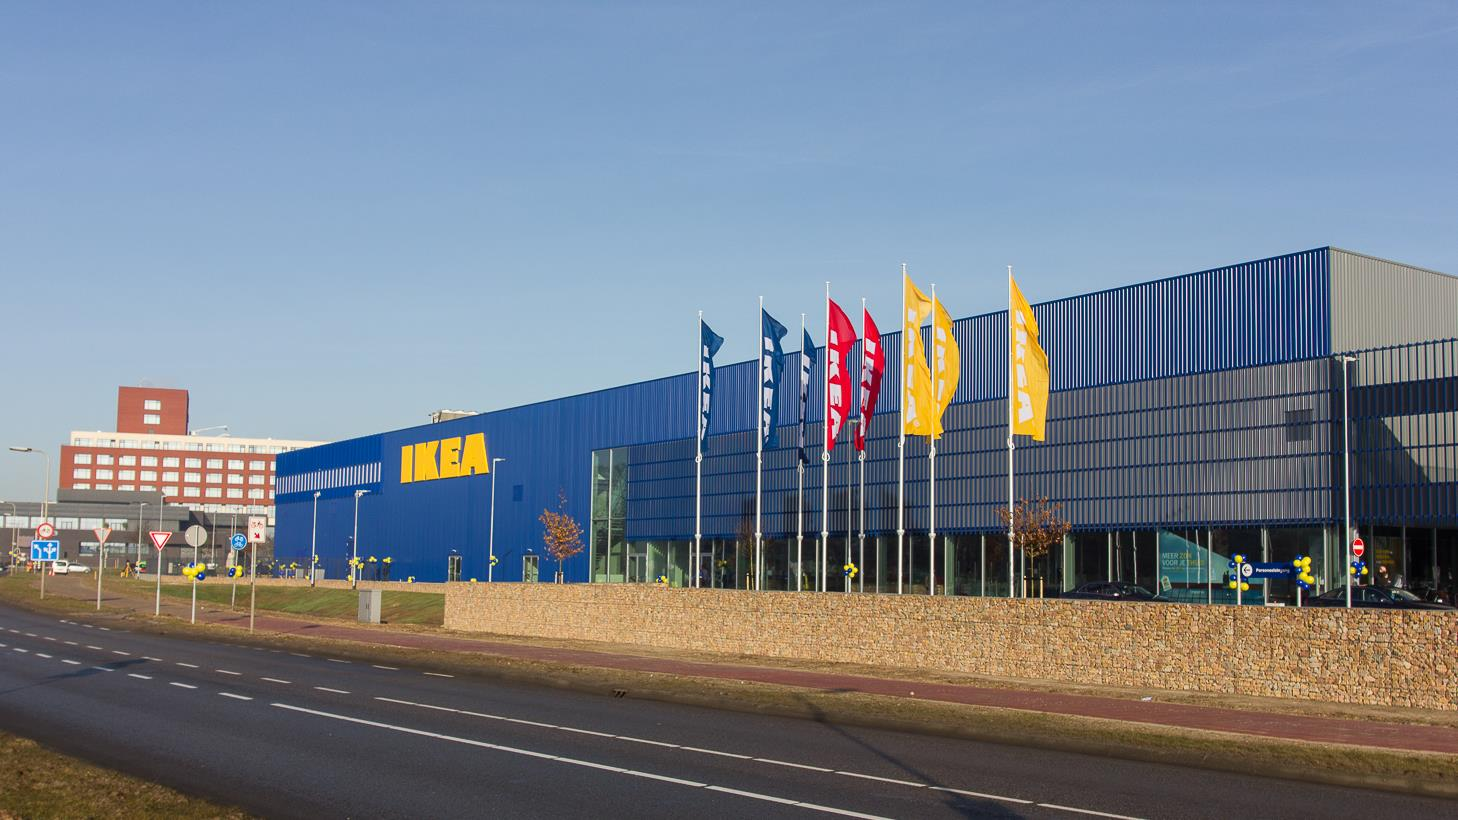 ikea in zwolle maakt titel 39 zuinigste filiaal van nederland 39 waar. Black Bedroom Furniture Sets. Home Design Ideas